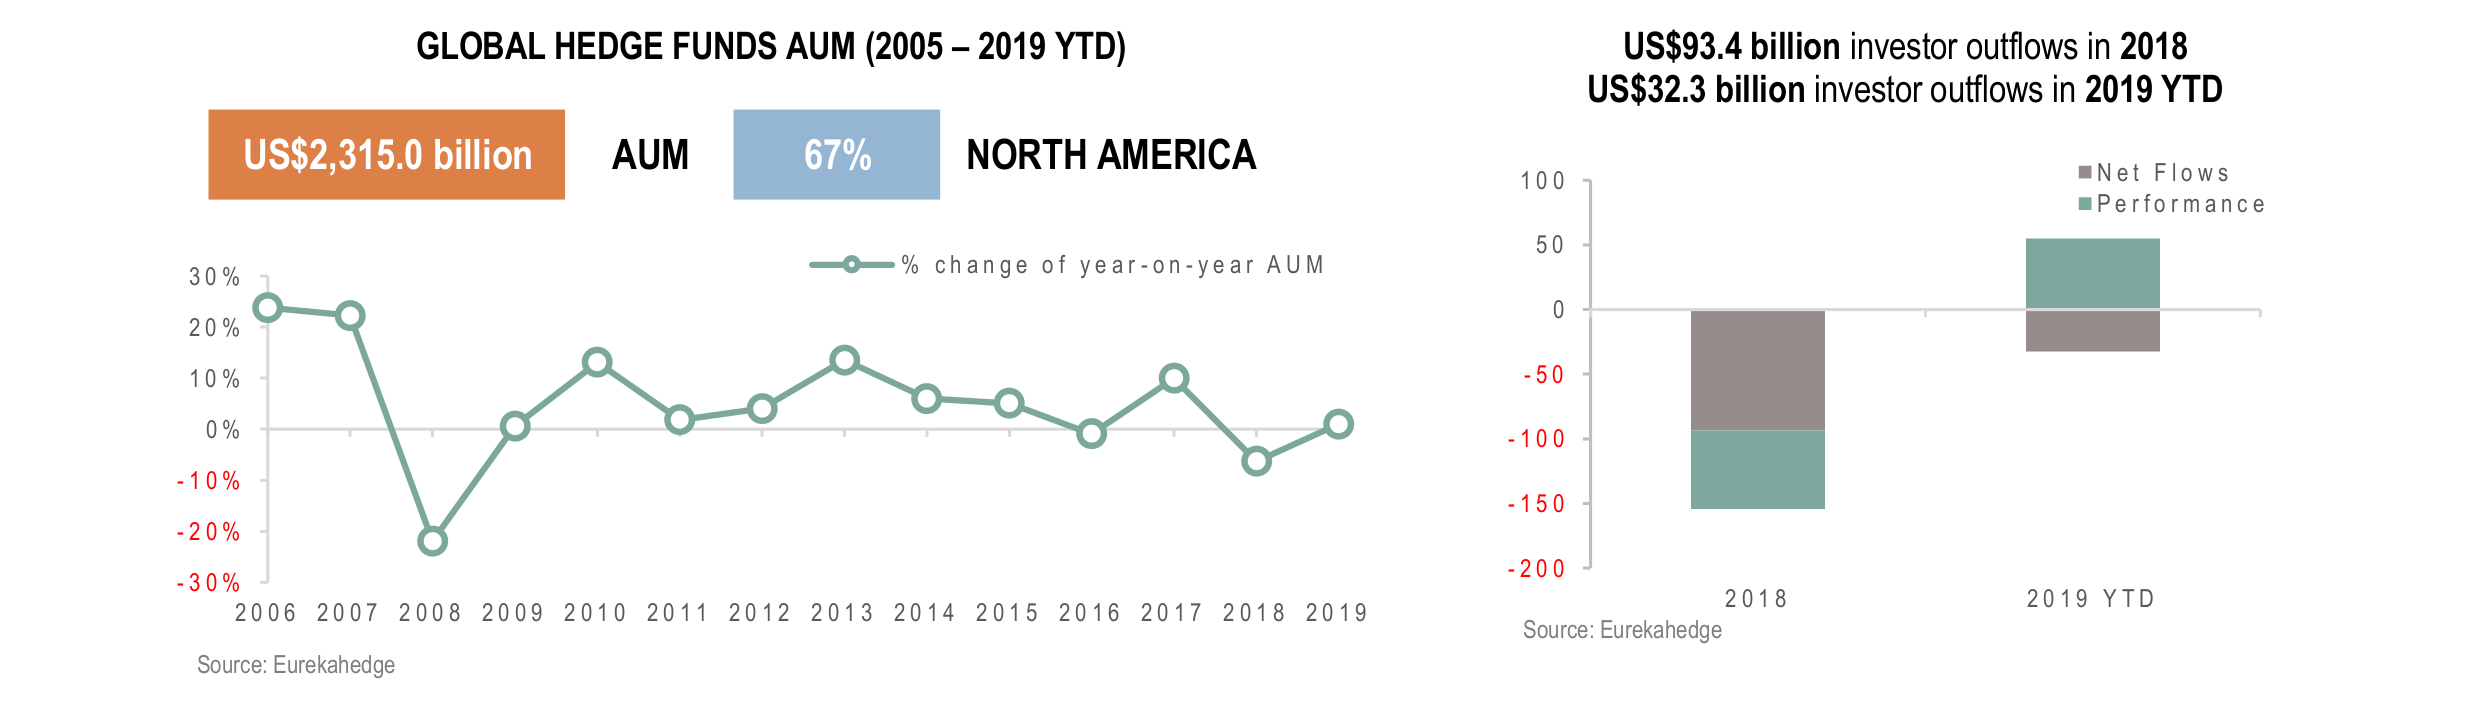 Global Hedge Funds Infographic April 2019 - AUM